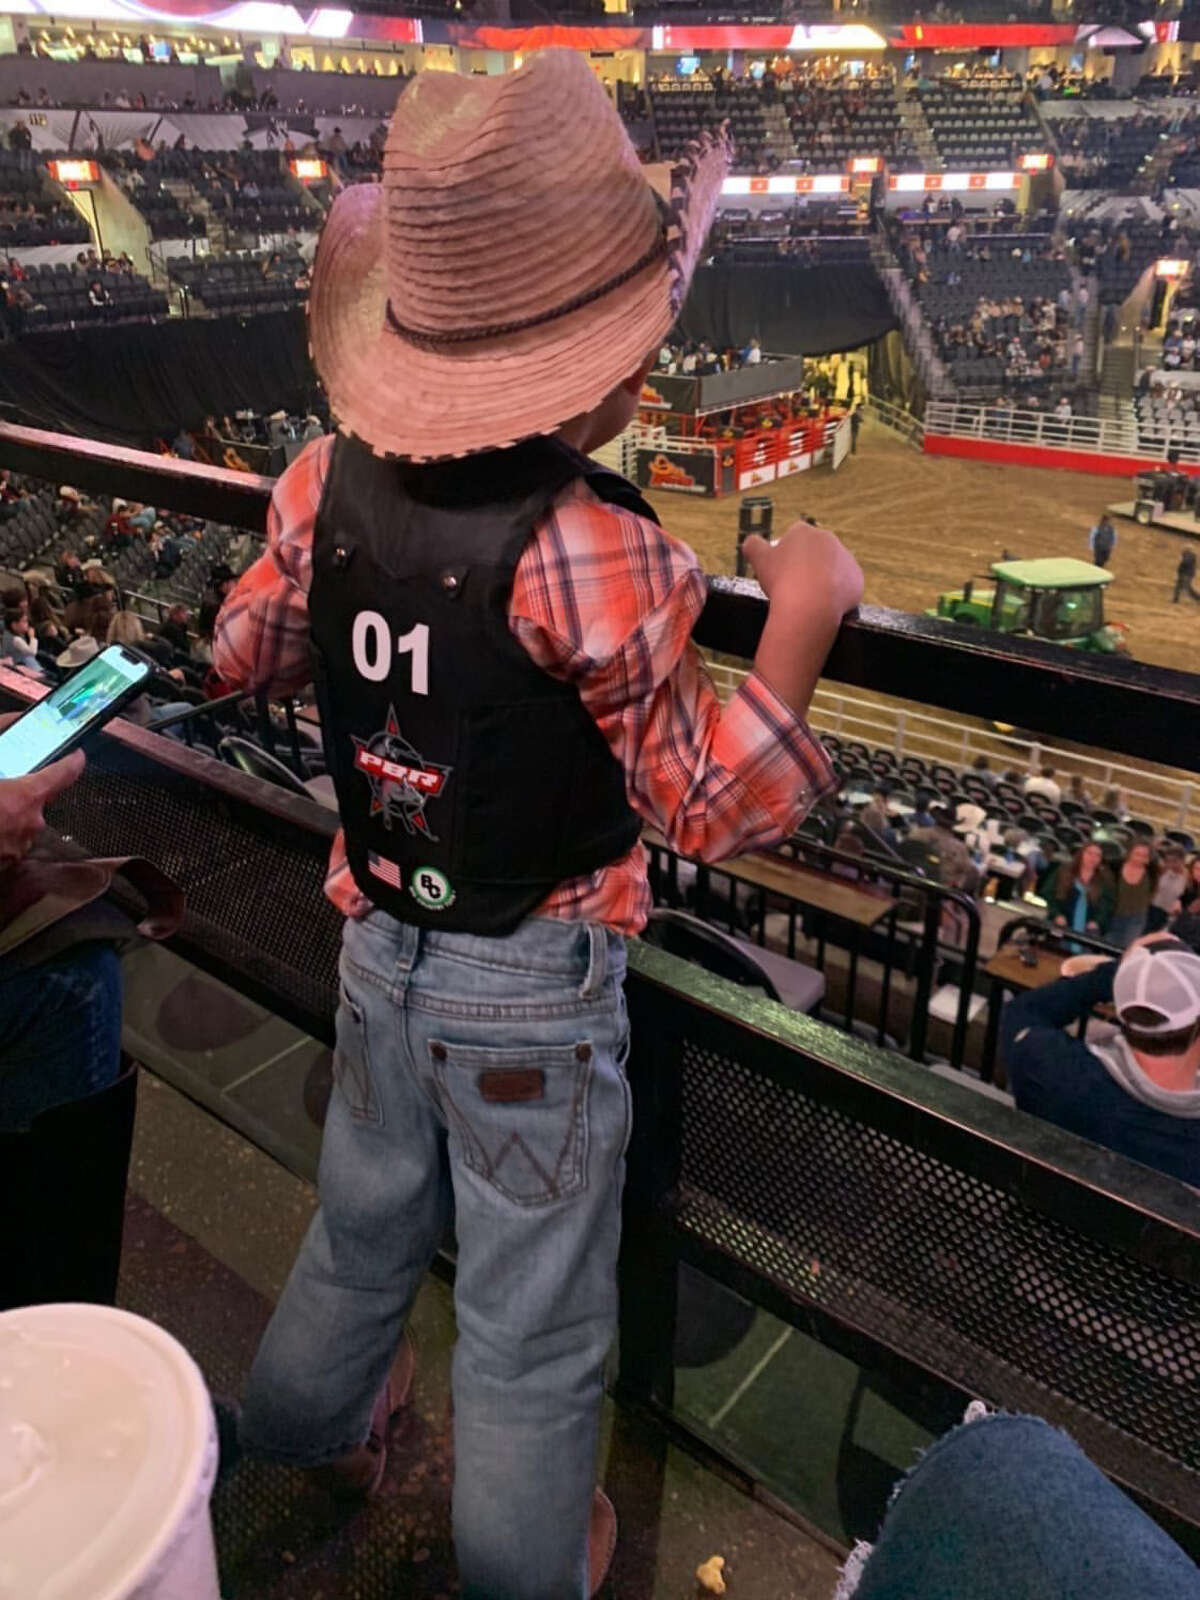 Rylin Castaneda, whose adorable toy bull-riding skills went viral in December, got a chance to experience rodeo action in real life and meet a bull rider at the San Antonio Stock Show and Rodeo.